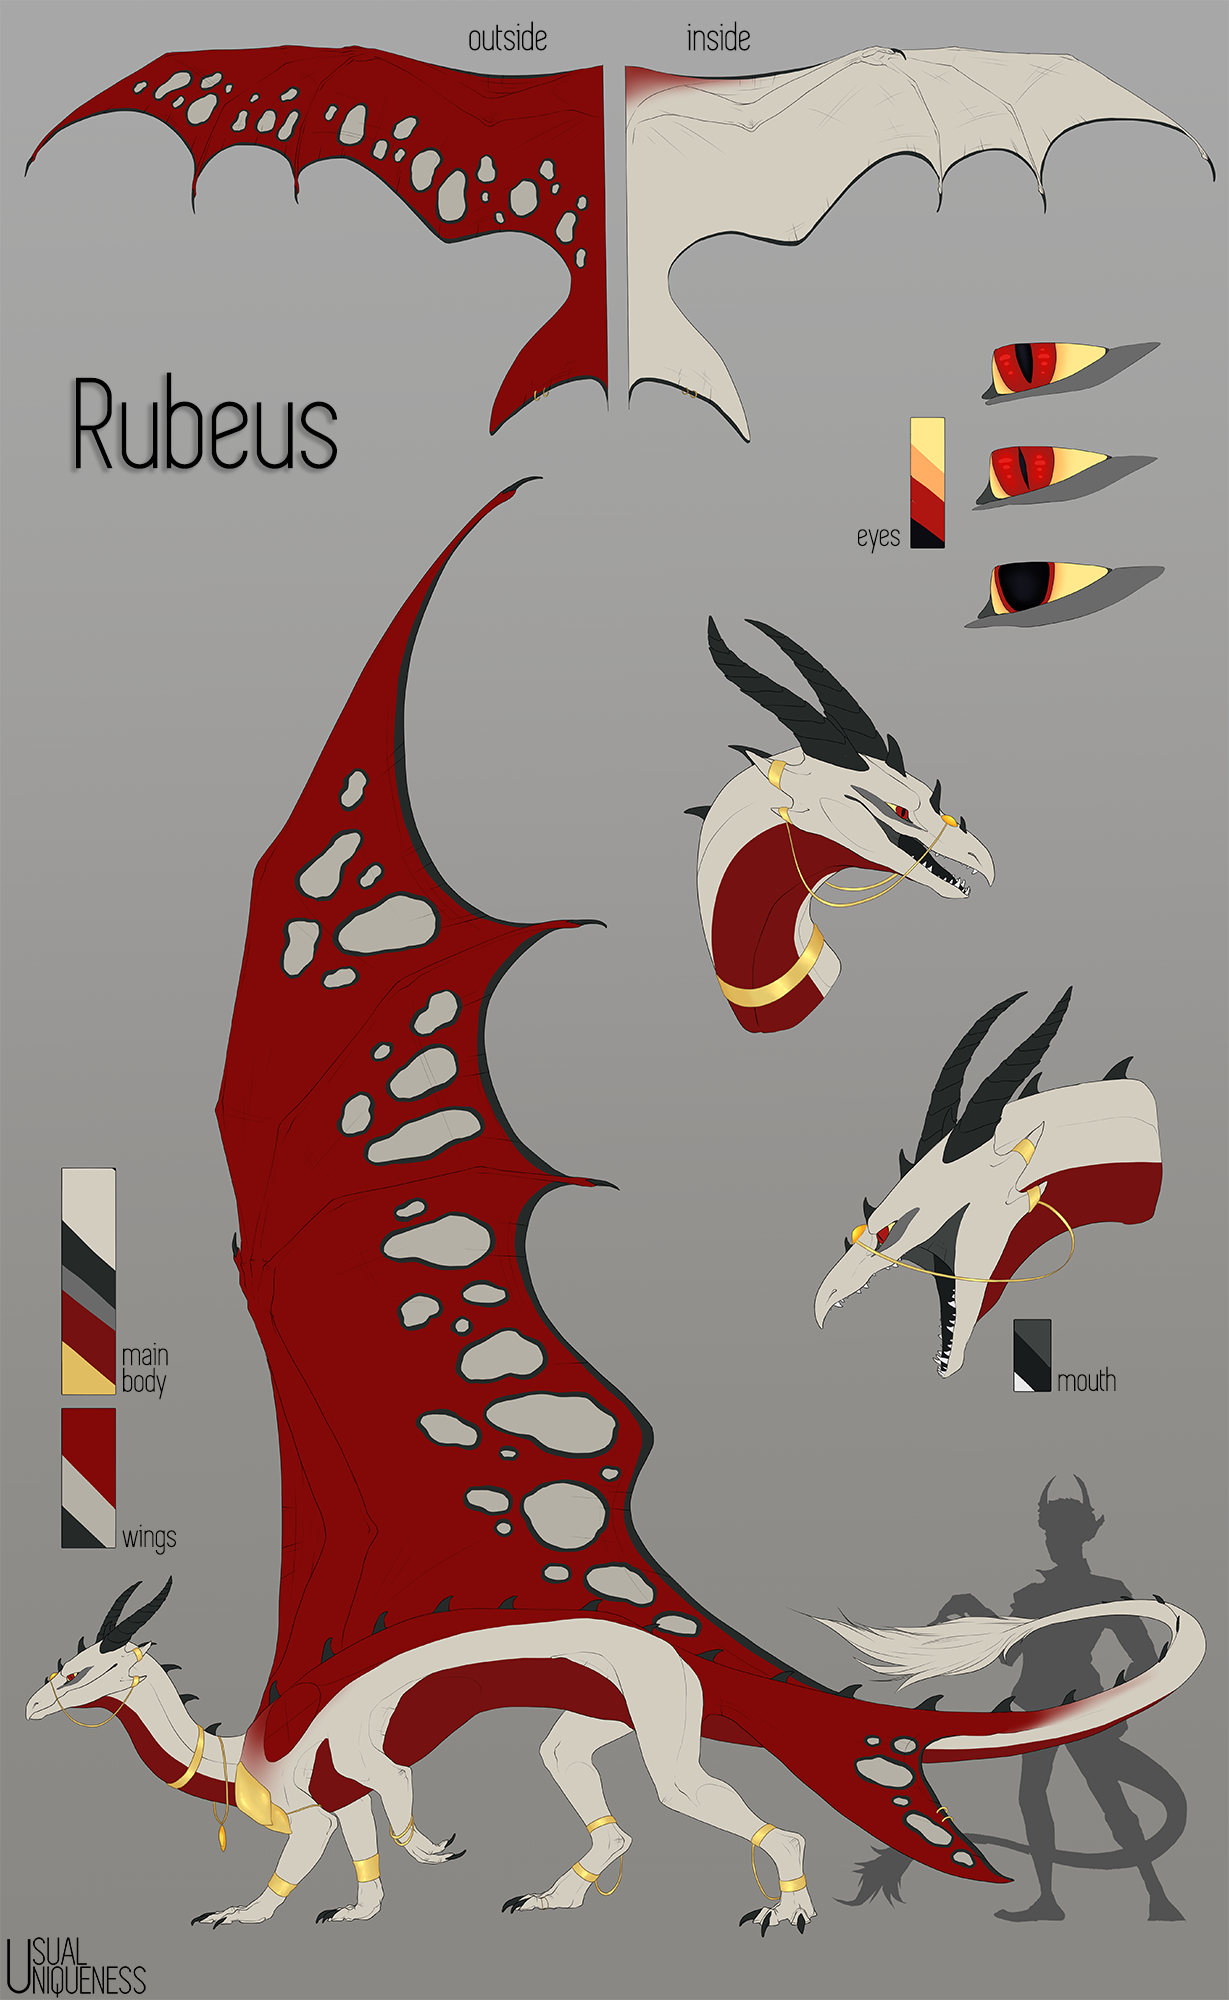 rubeus_reference_resize.png